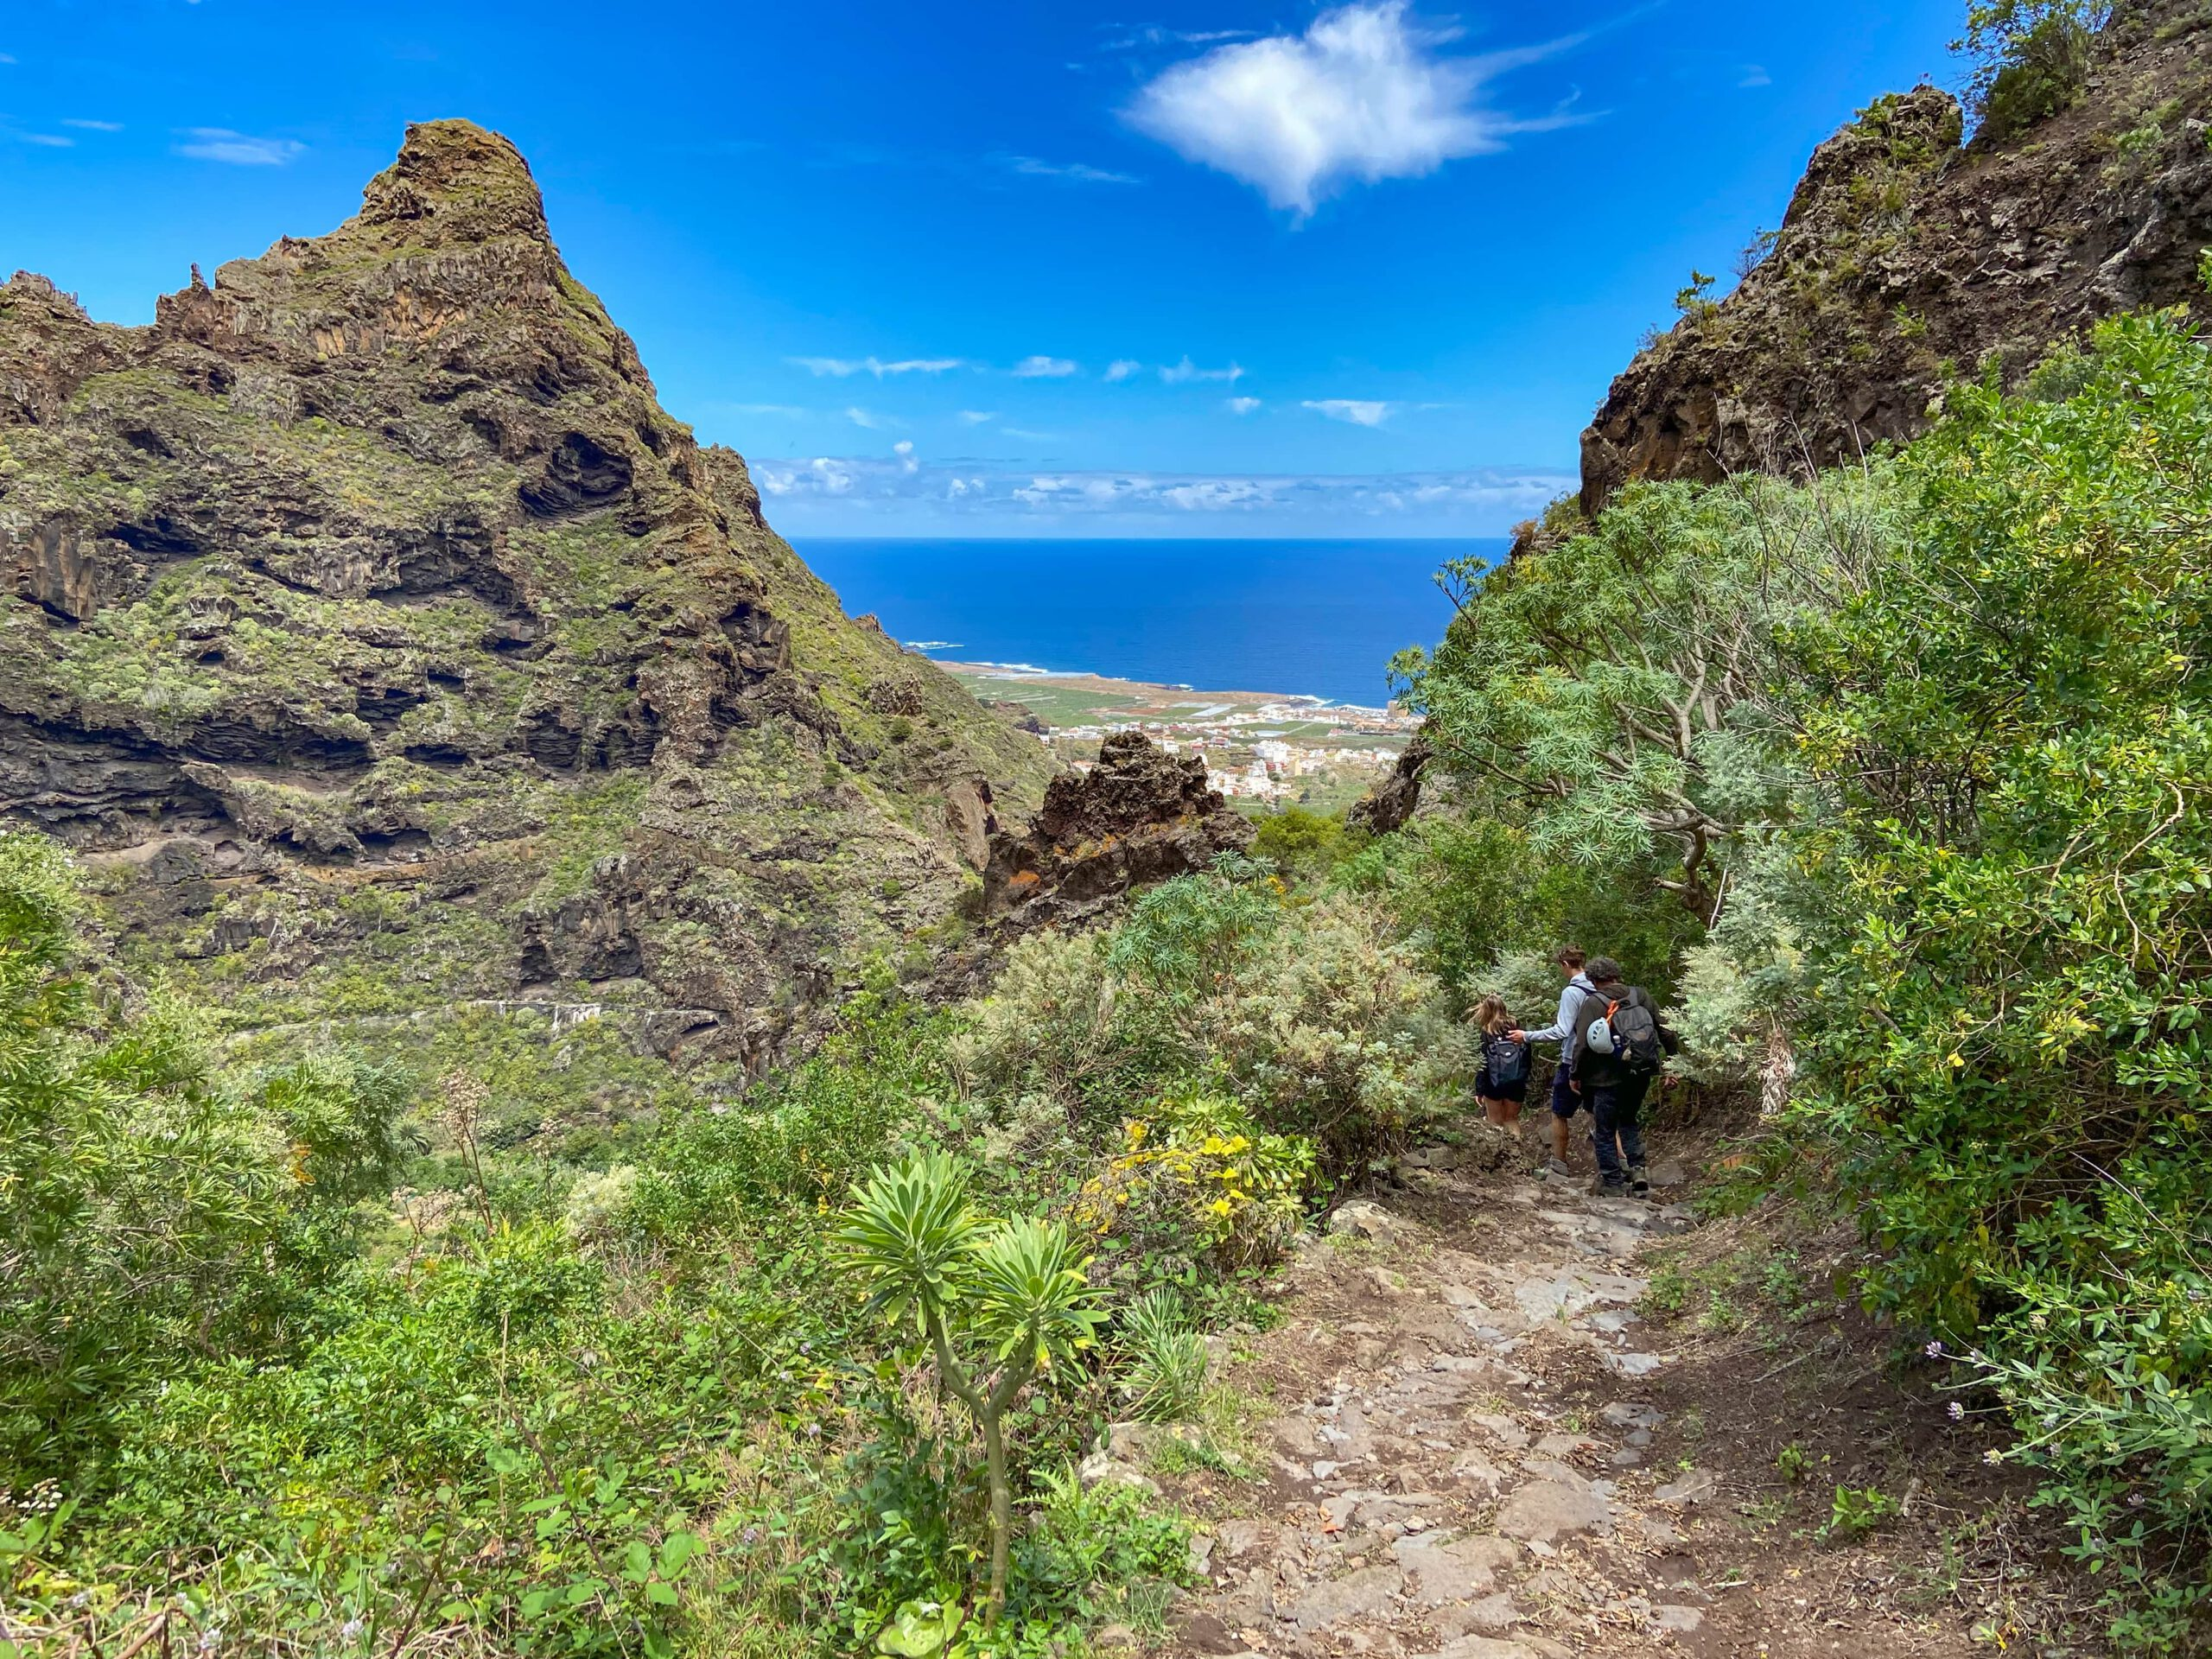 Hiking trail PR TF 53 from Erjos to Los Silos via Cuevas Negras with view of the coast at Los Silos